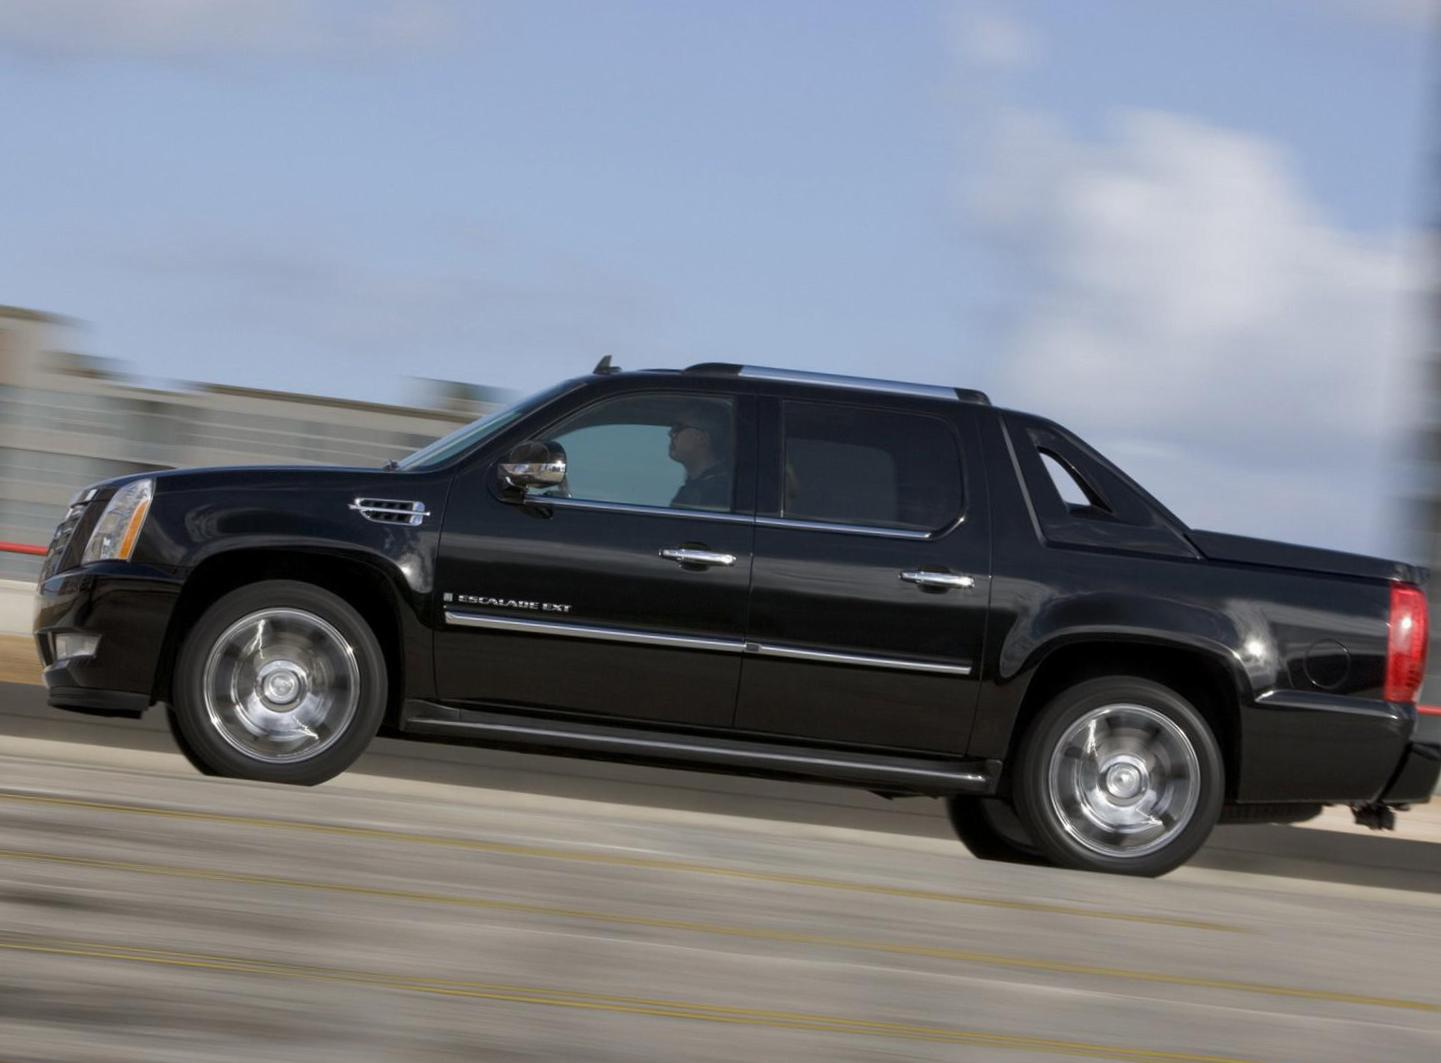 Cadillac Escalade EXT models 2011